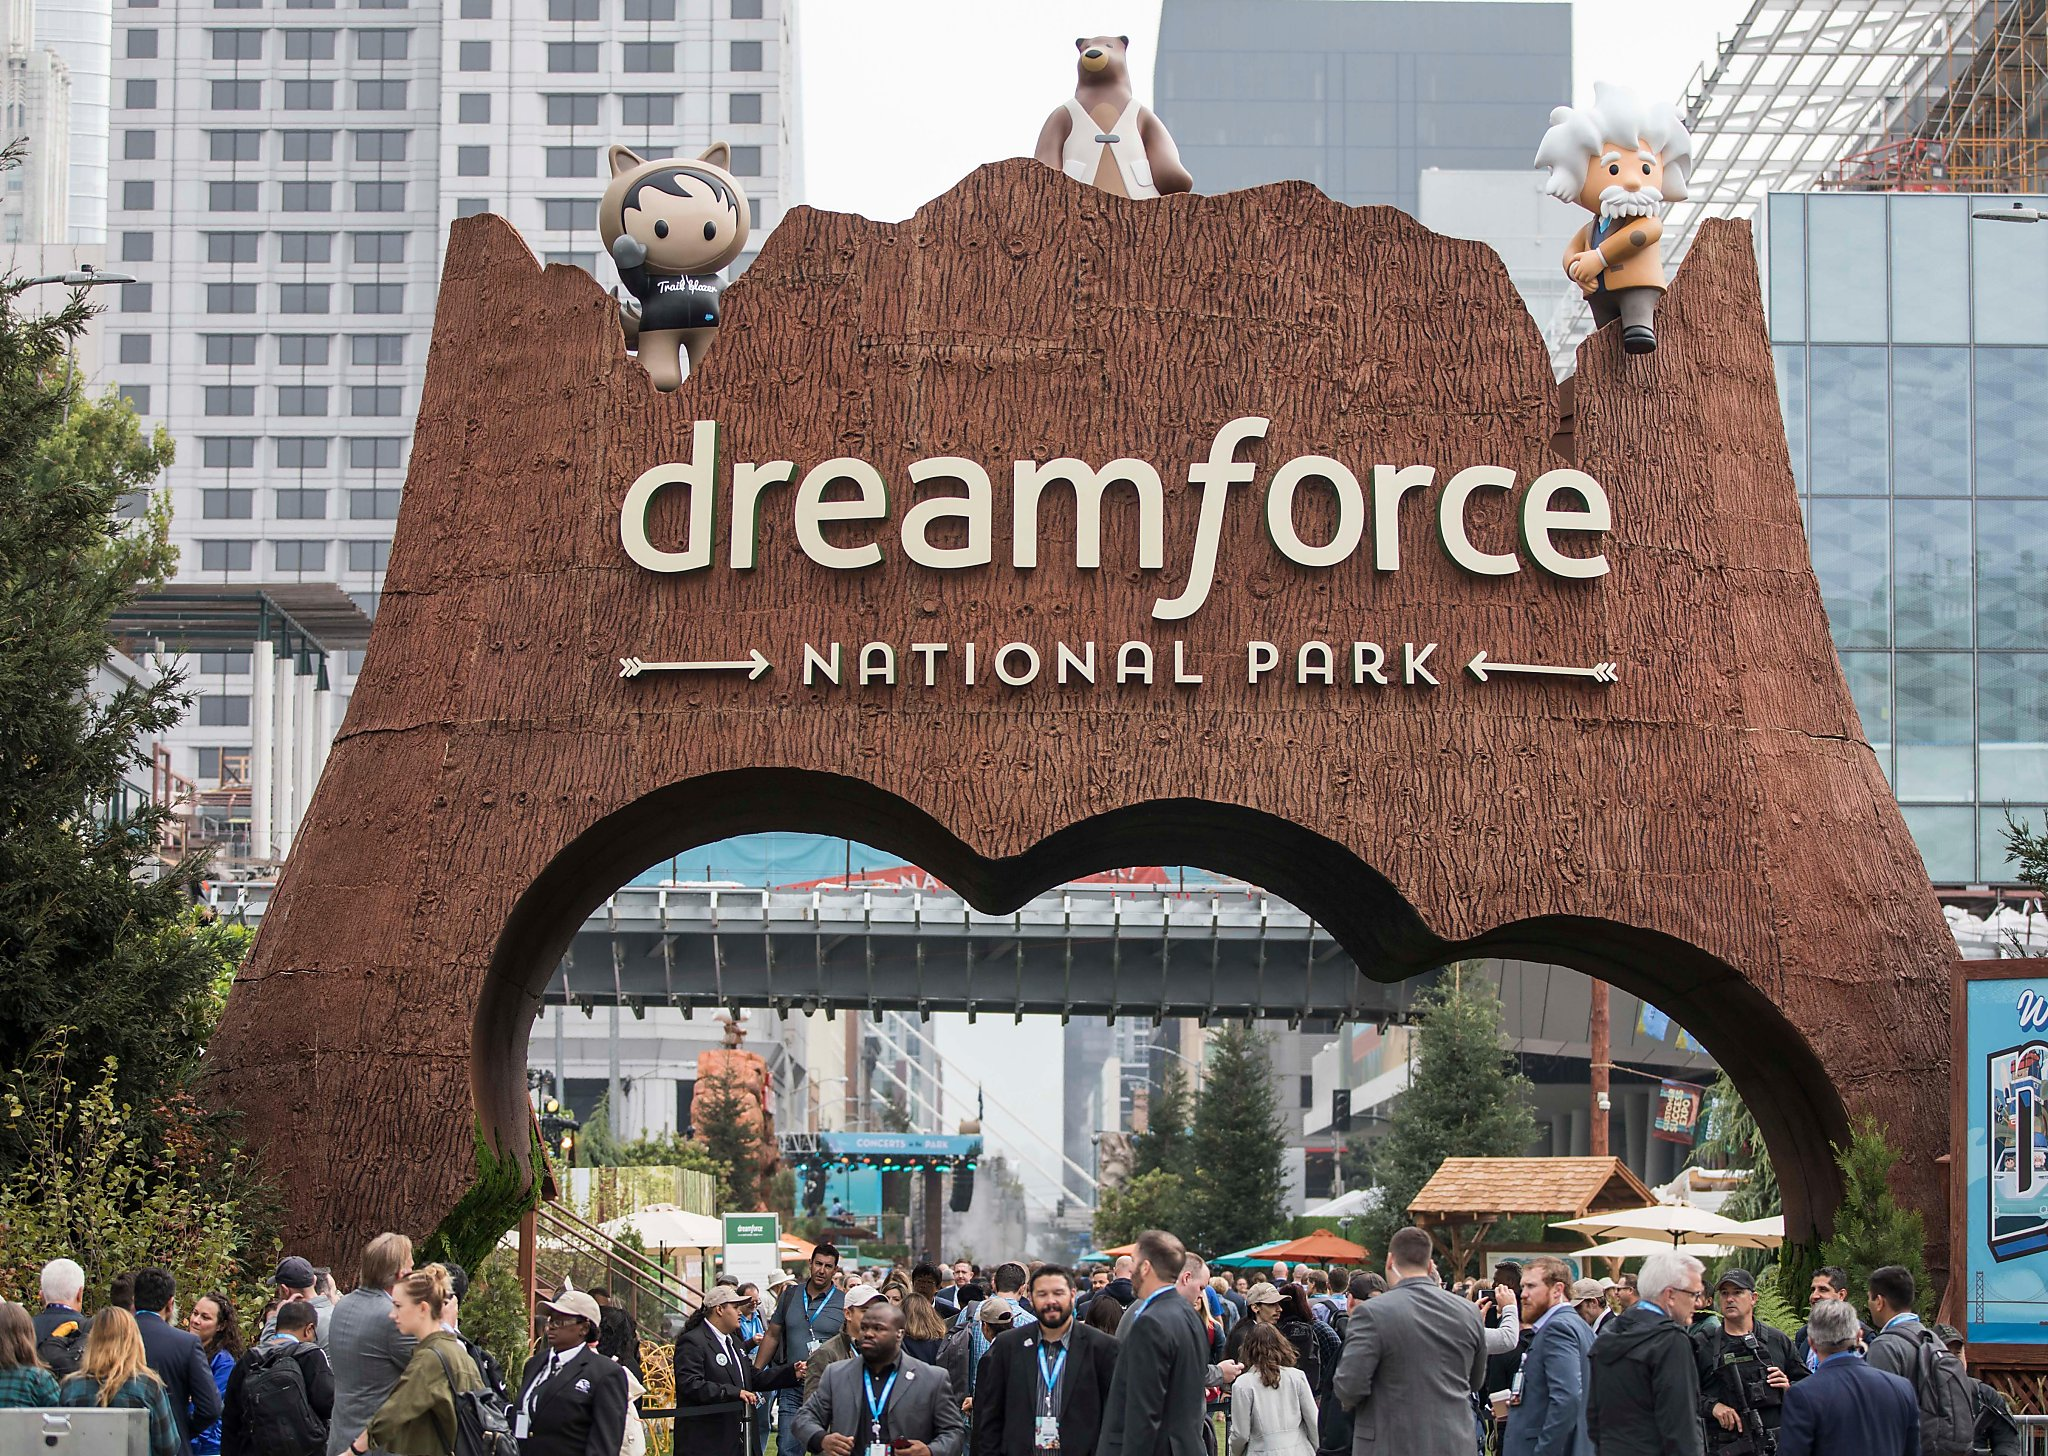 Dreamforce is coming back to S.F. - with a 5,000-person capacity and mandatory vaccinations